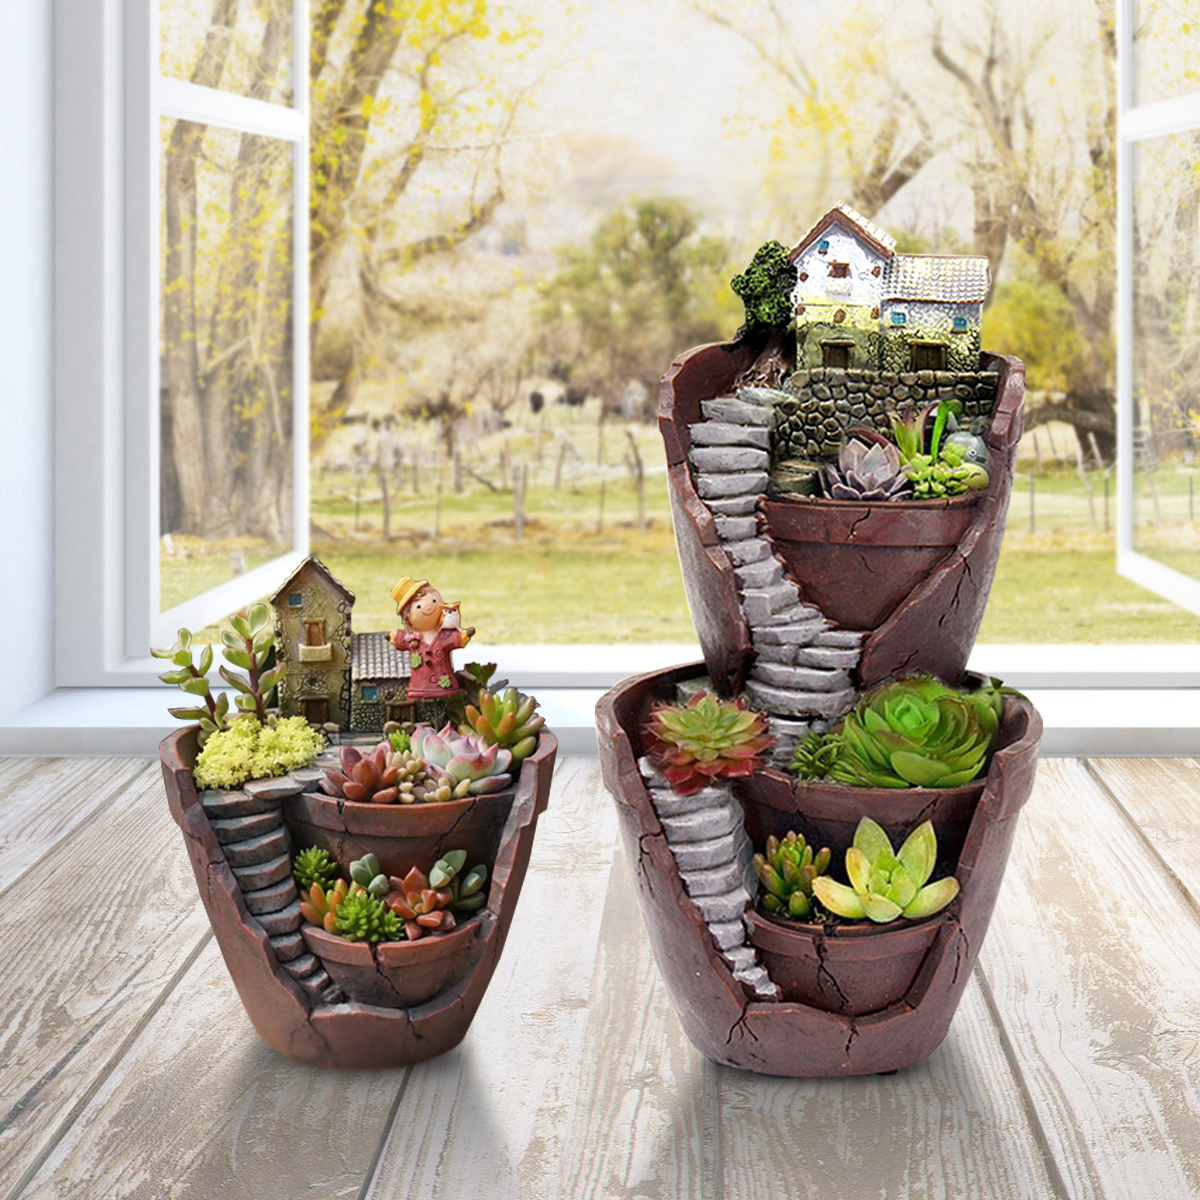 Sky Garden Potted Big House Micro Landscape Meat Plant Pots Flower Pot Resin Decorations